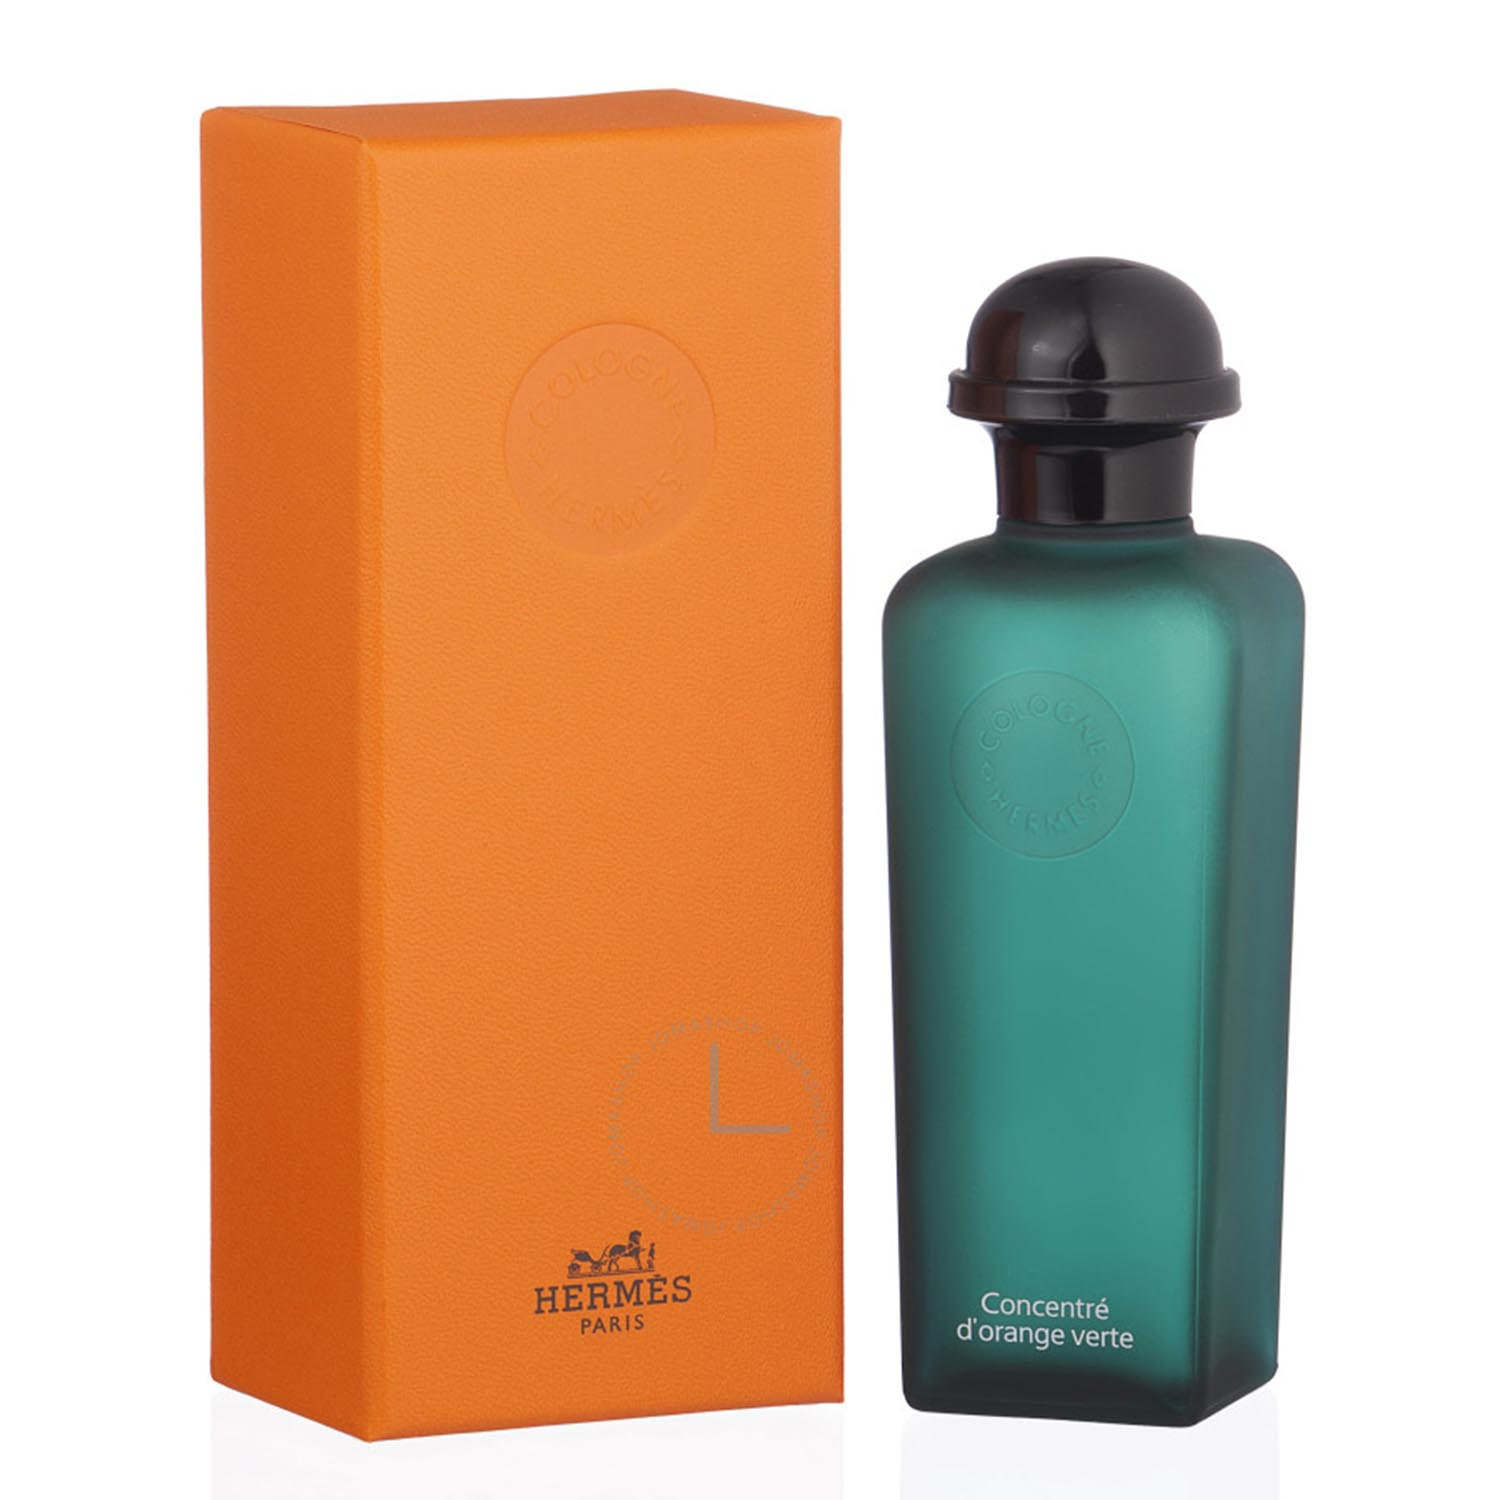 Hermes paris eau d orange verte eau de cologne 50ml refillable vaporizador - BellezaMagica.com